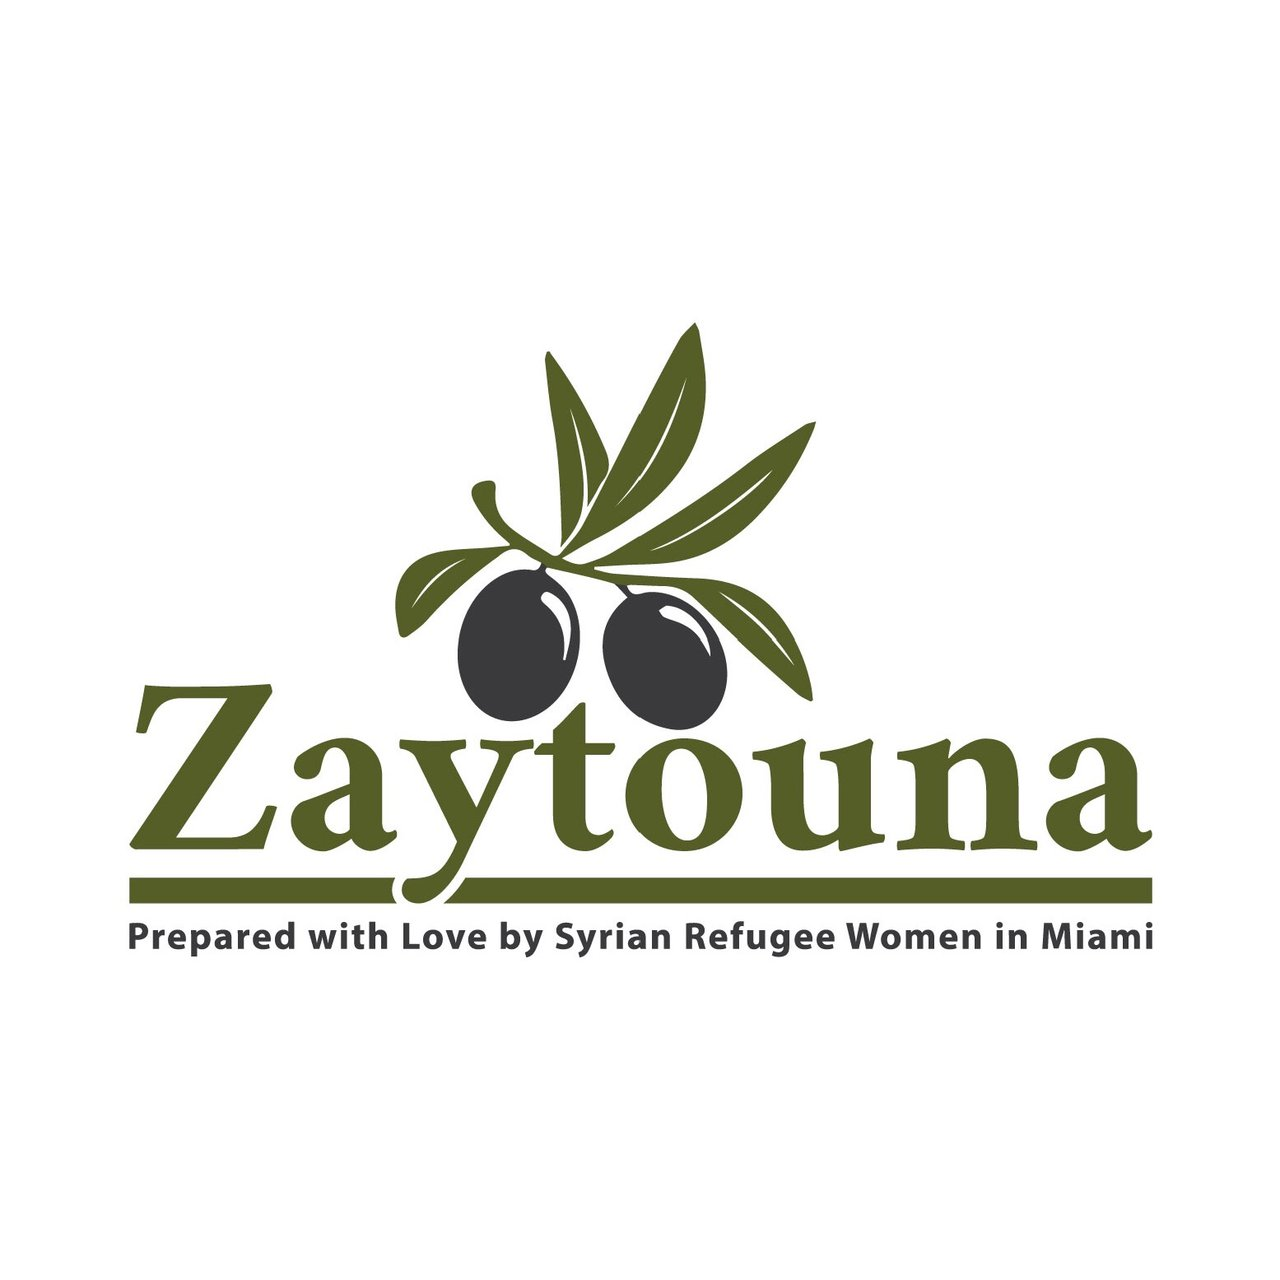 Zaytouna Foods photo DD3C5C3E-3BAC-4A61-A347-B347C280137A.jpg